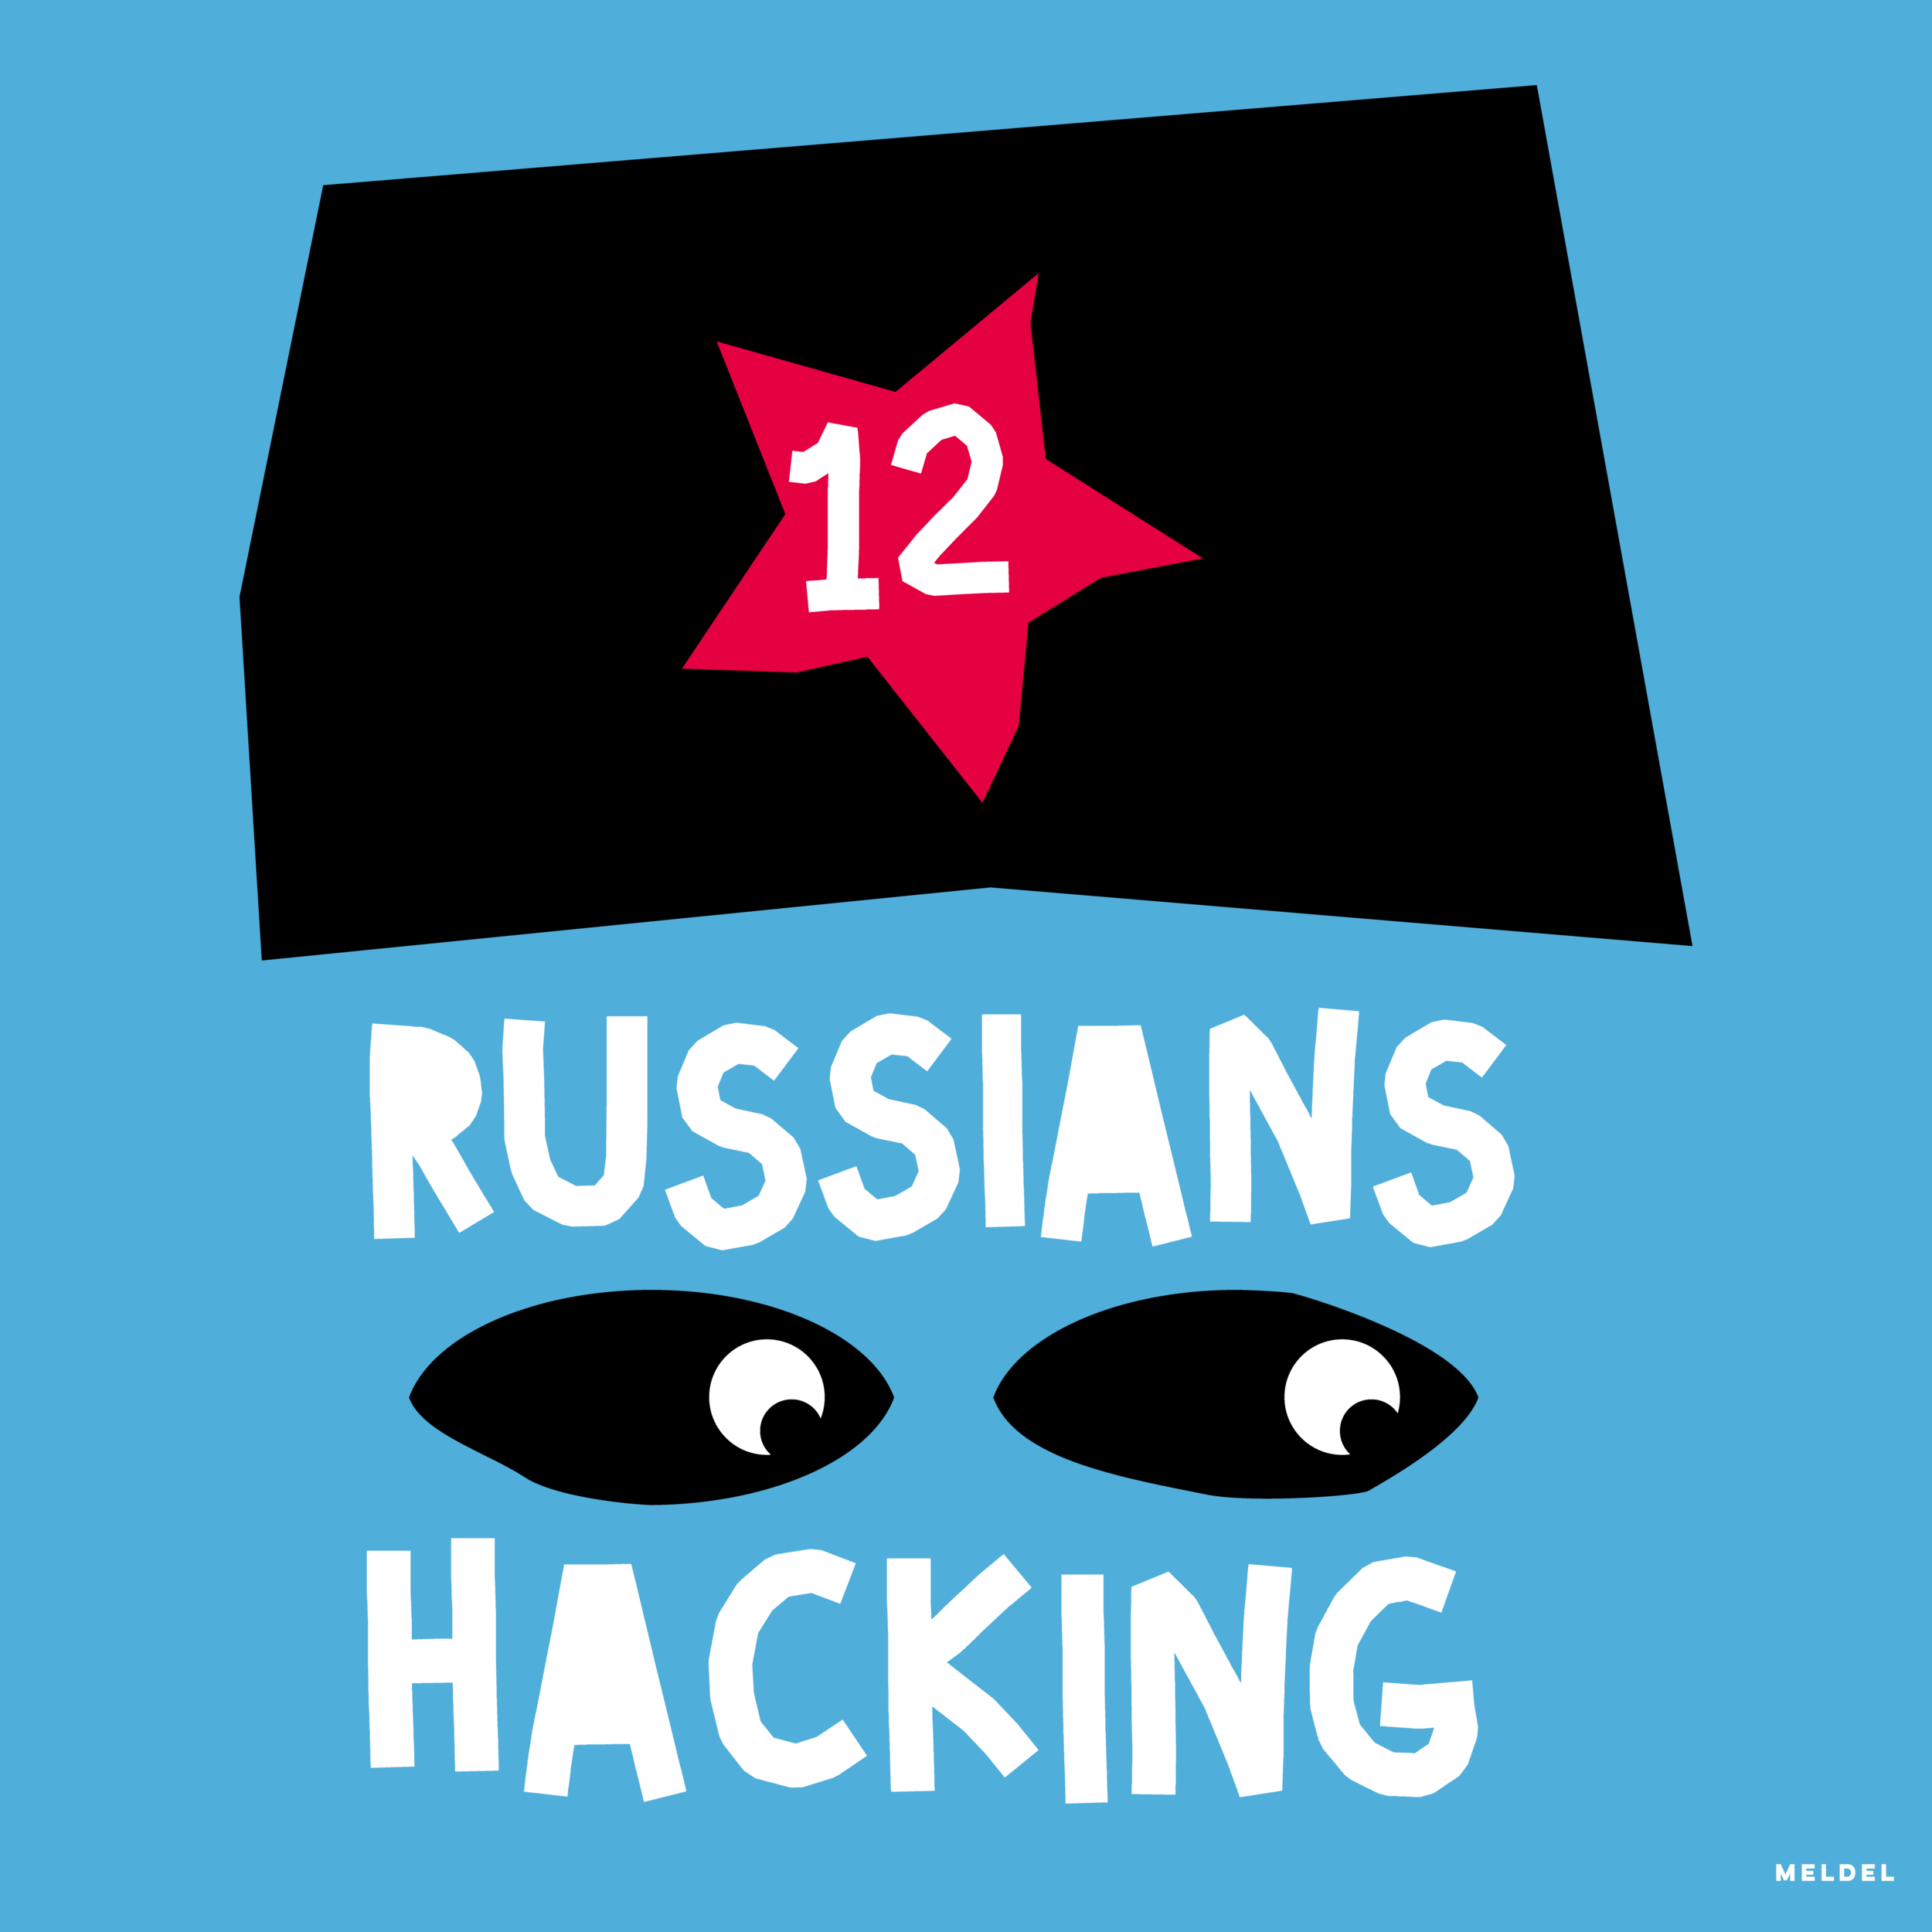 12Russians.png